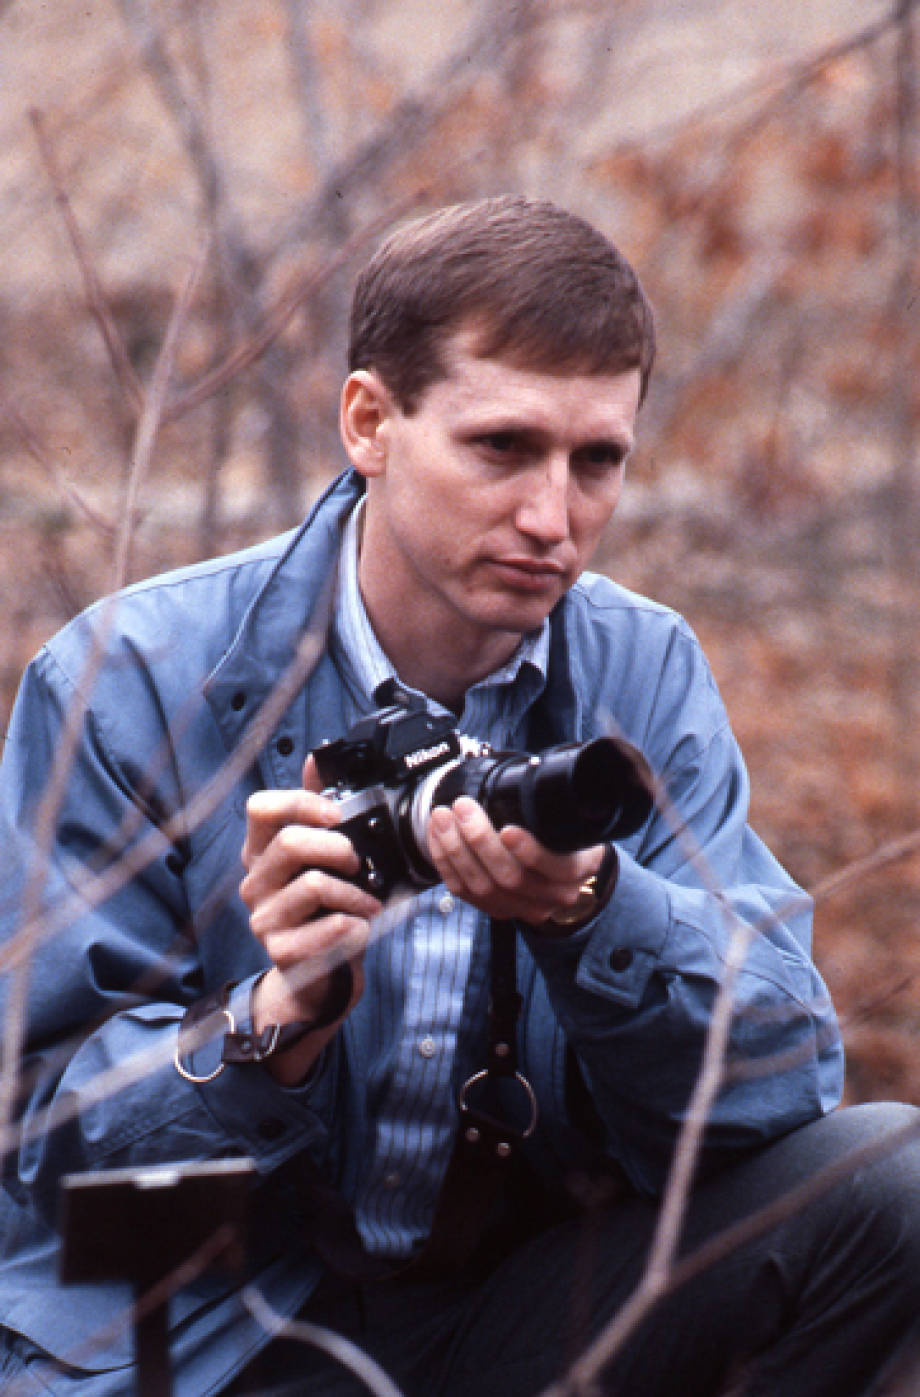 George Laur with camera